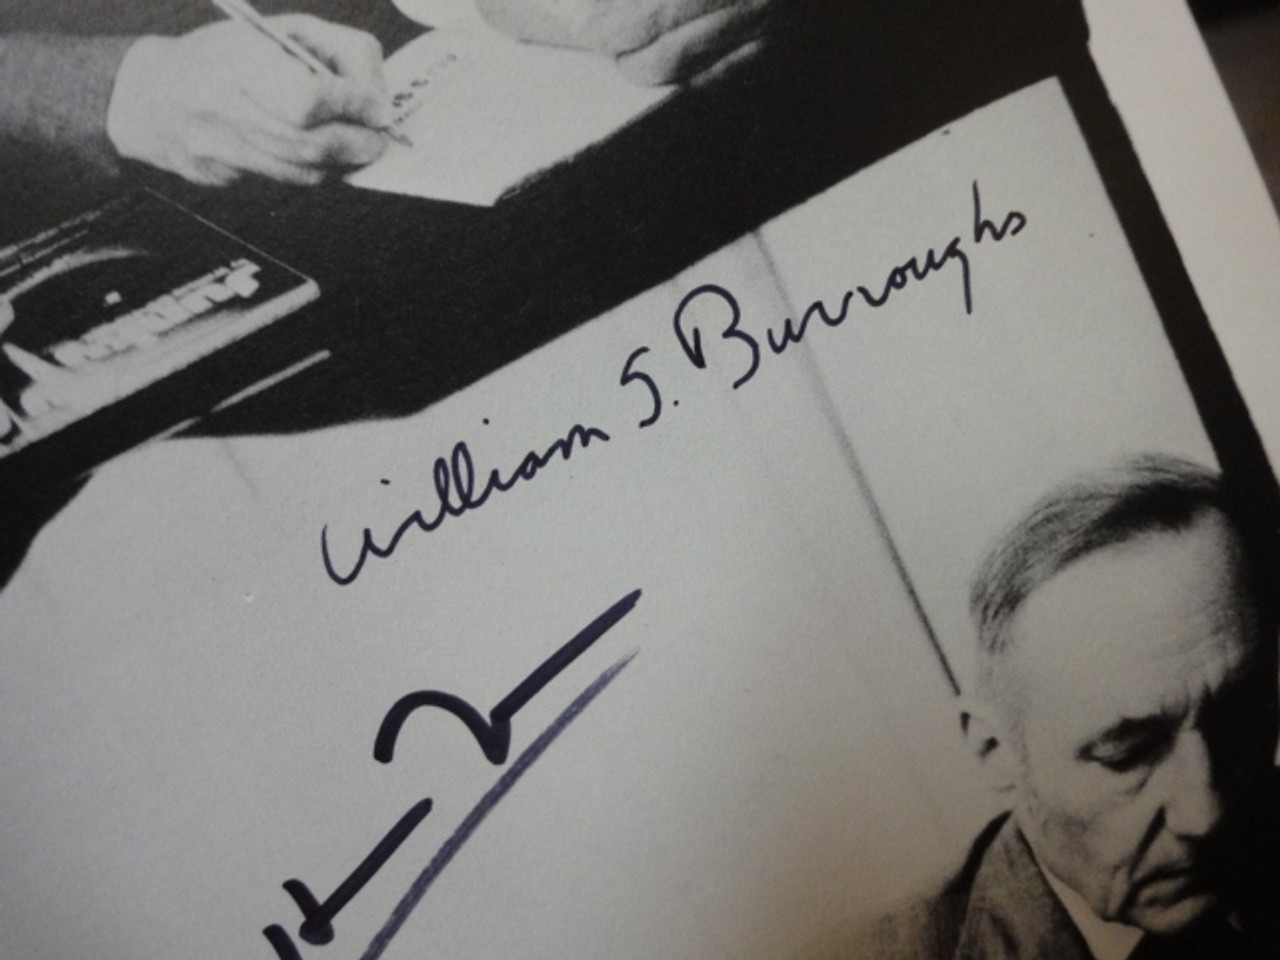 Burroughs, William and Patti Smith Photo Signed Autograph Candid